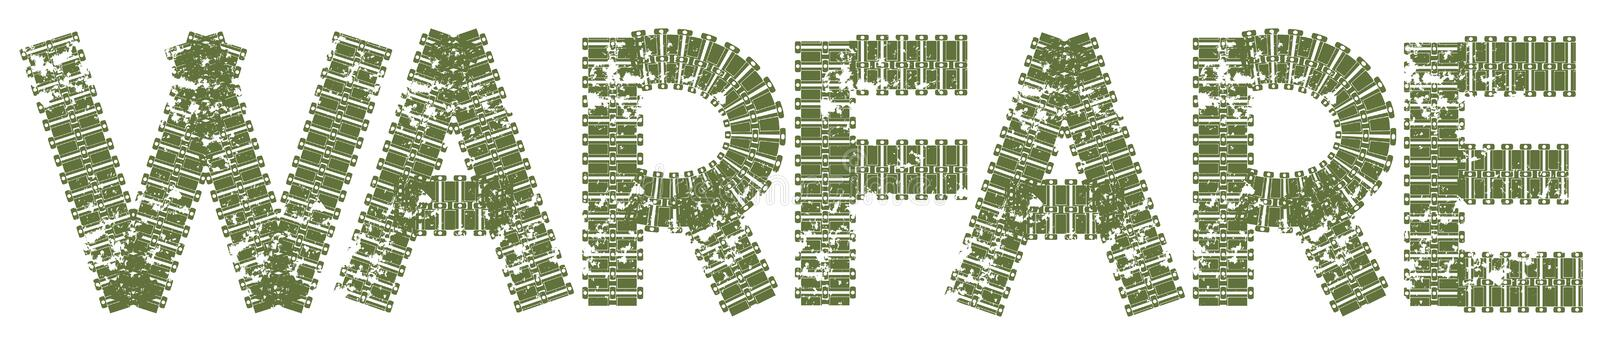 Warfare text with the letters made of tank tracks royalty free illustration